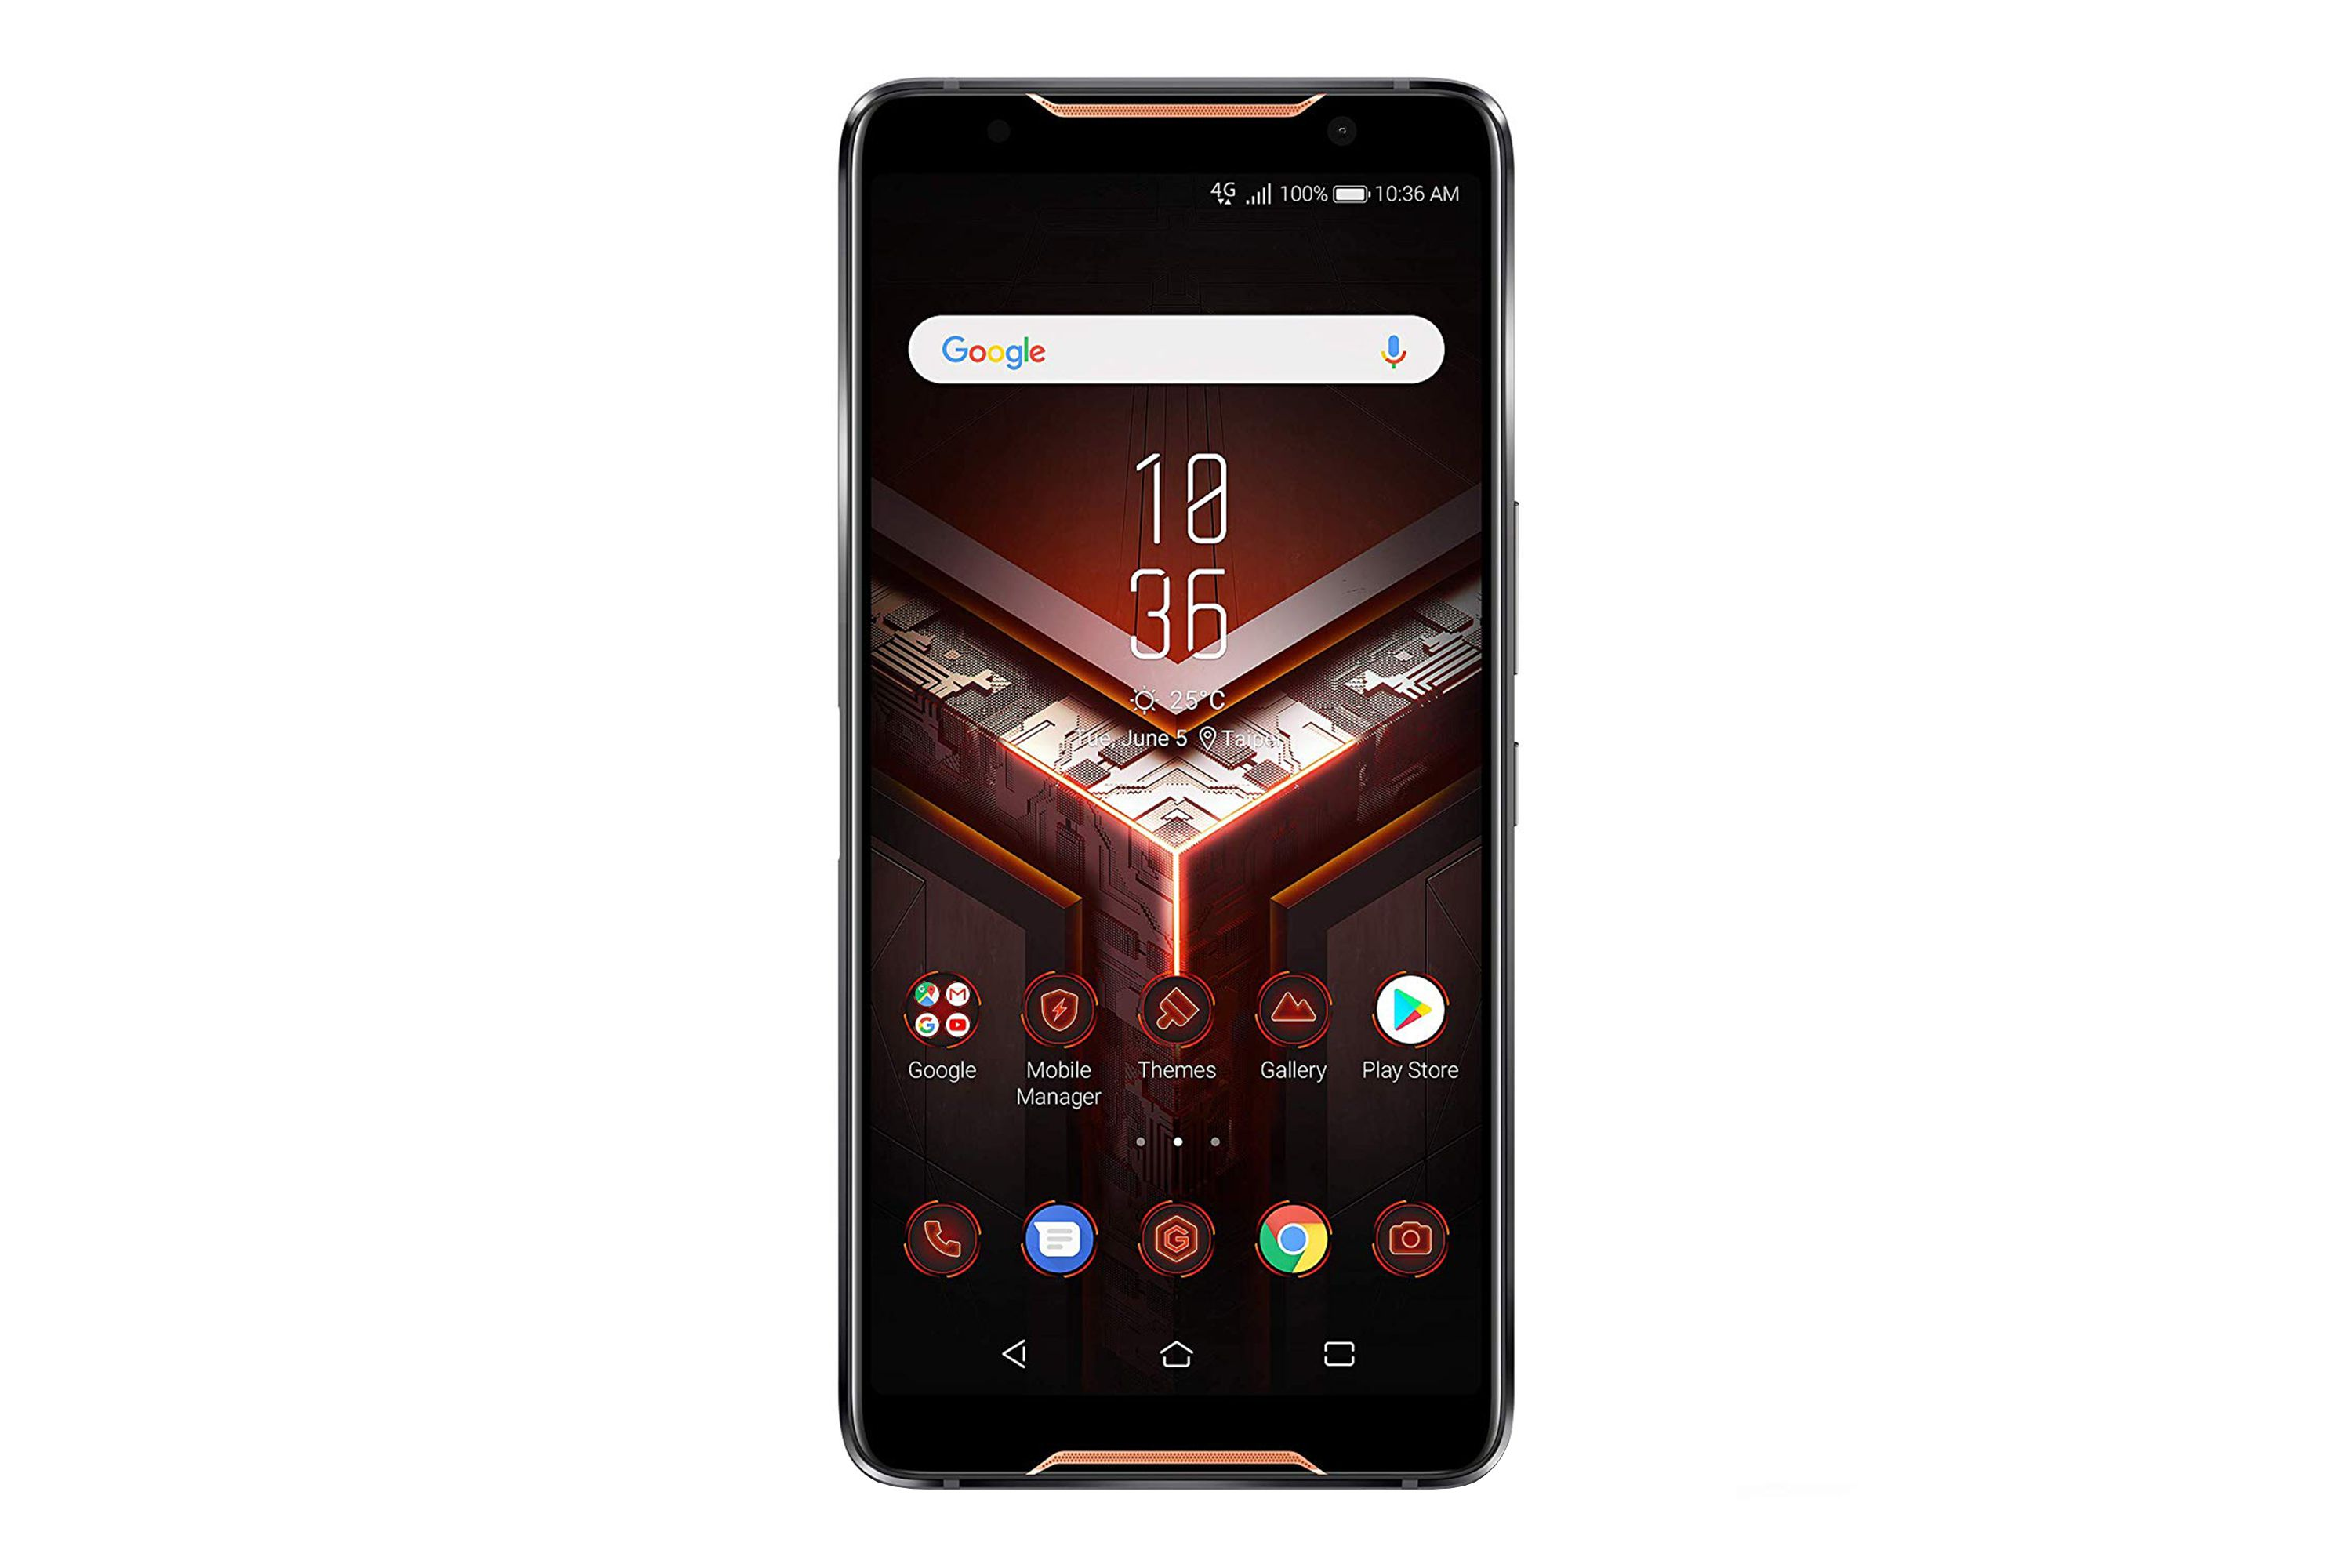 06075d59081 ASUS ROG Android Smartphone